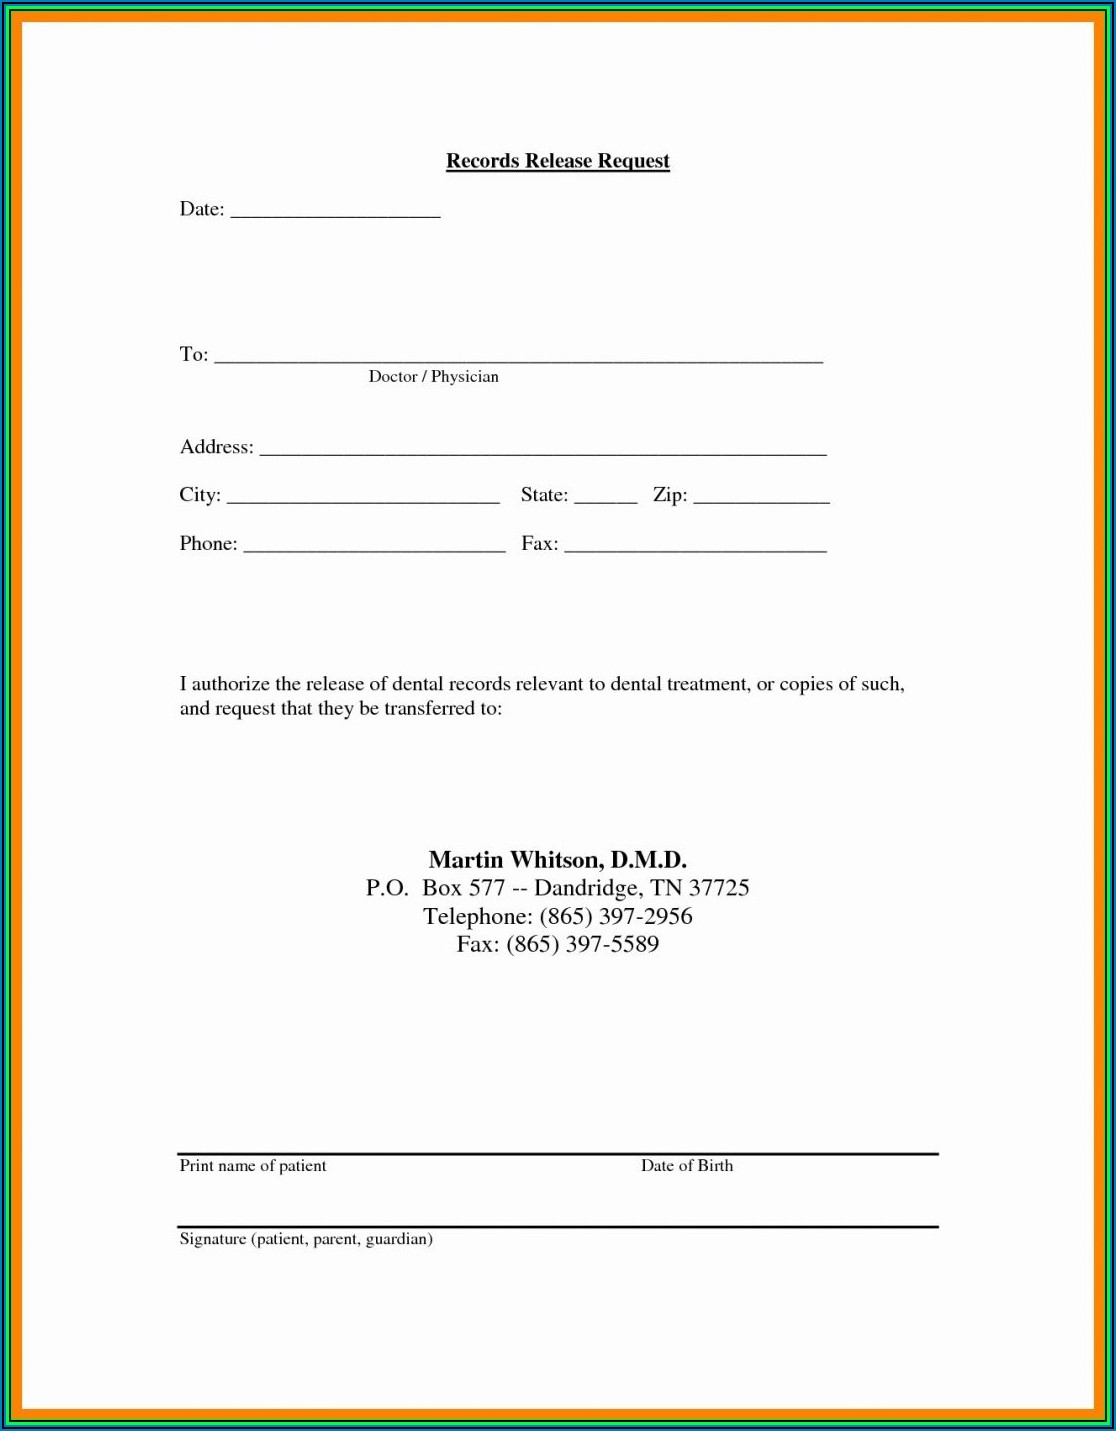 Hipaa Compliant Medical Authorization Form Online